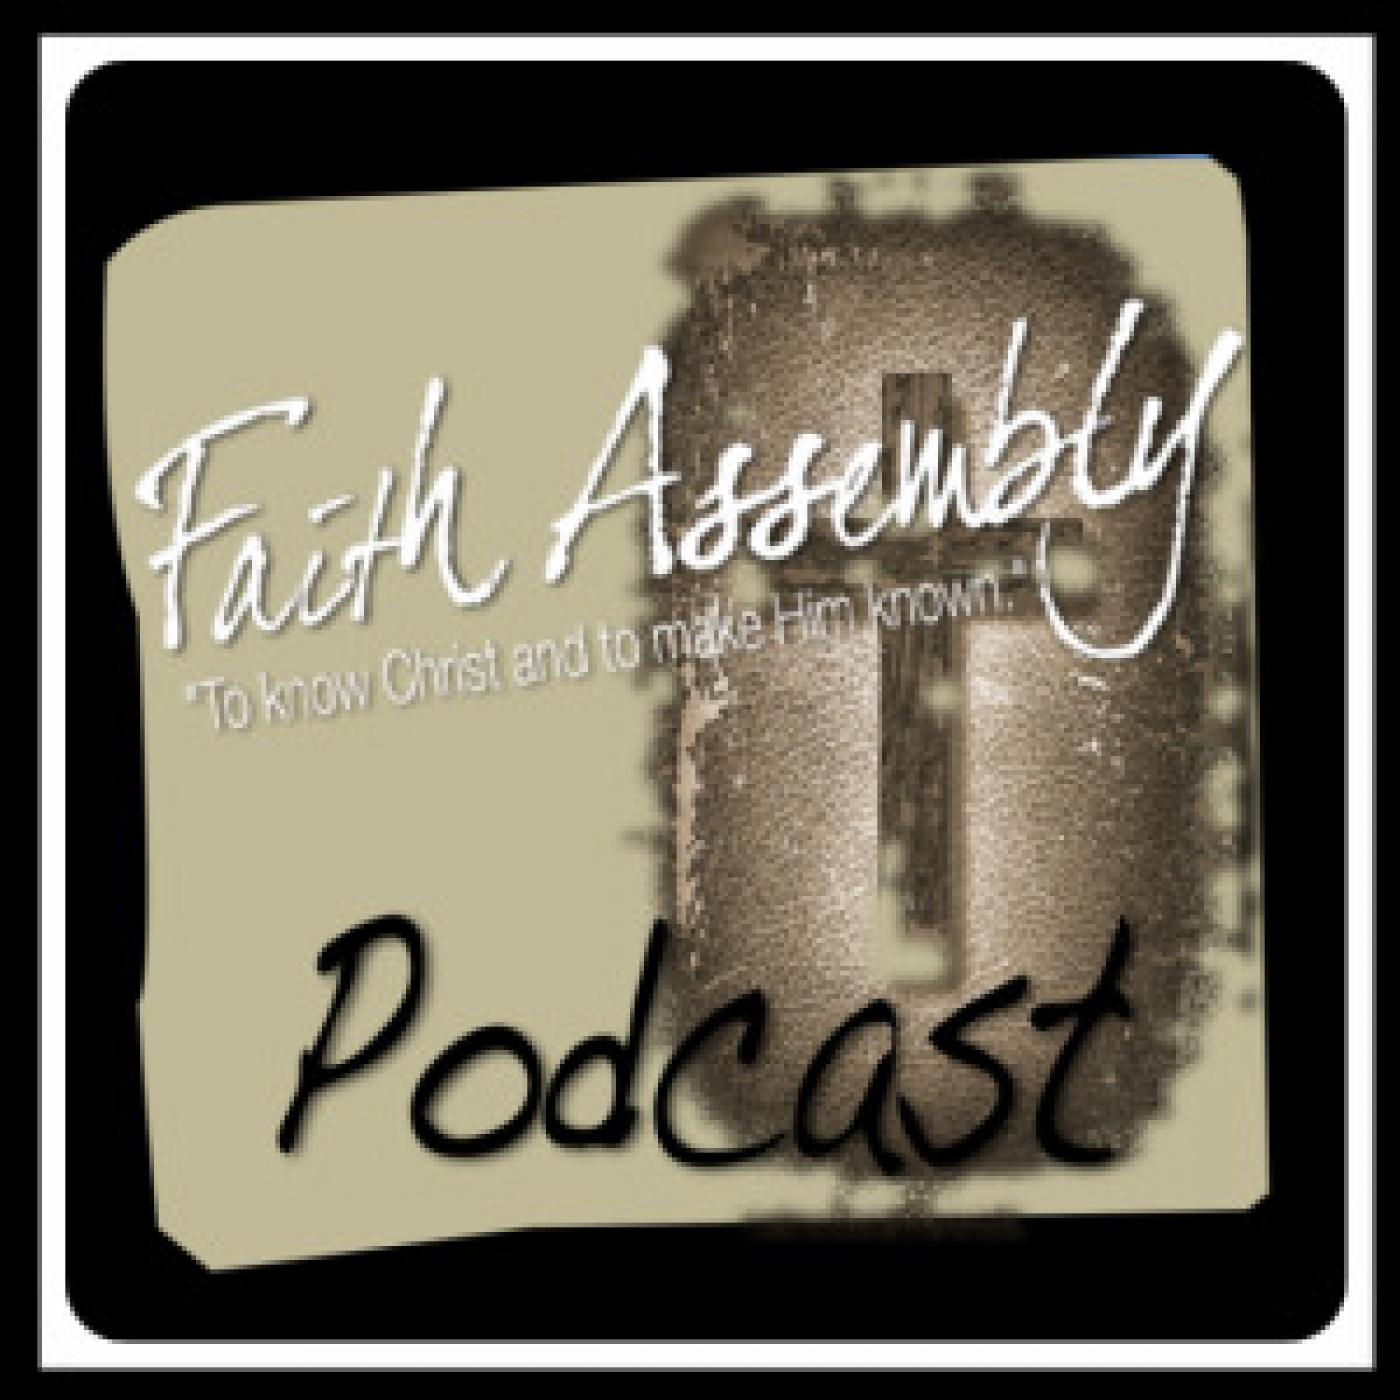 Faith Assembly, Imperial, CA Podcast